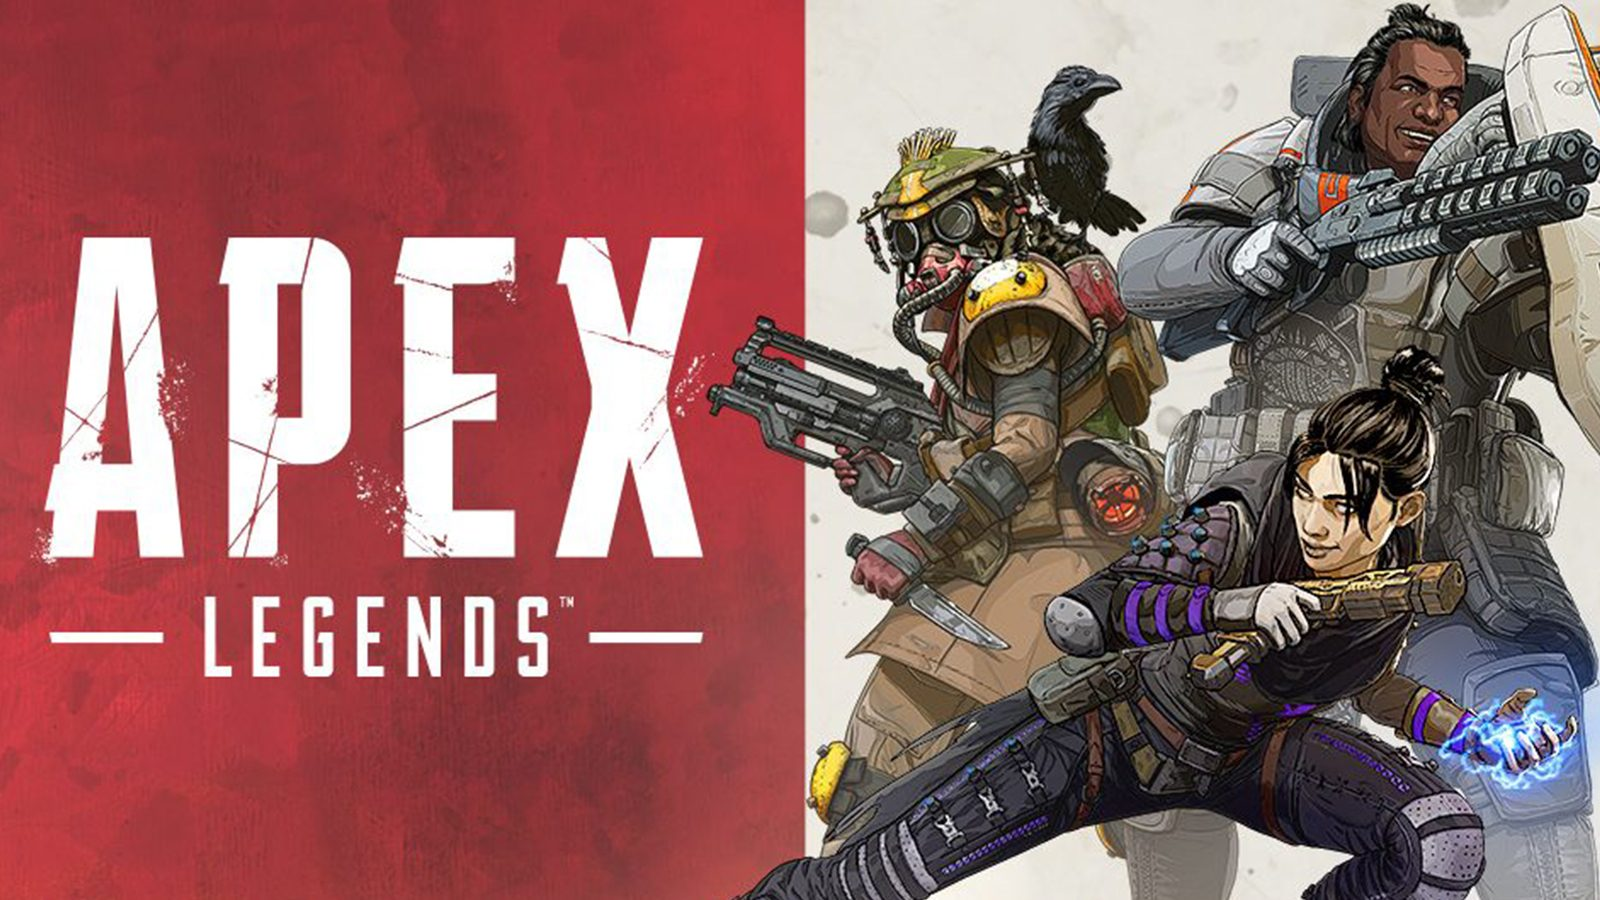 apex legends ot 40 urovnya [origin] + otvet 99 rur